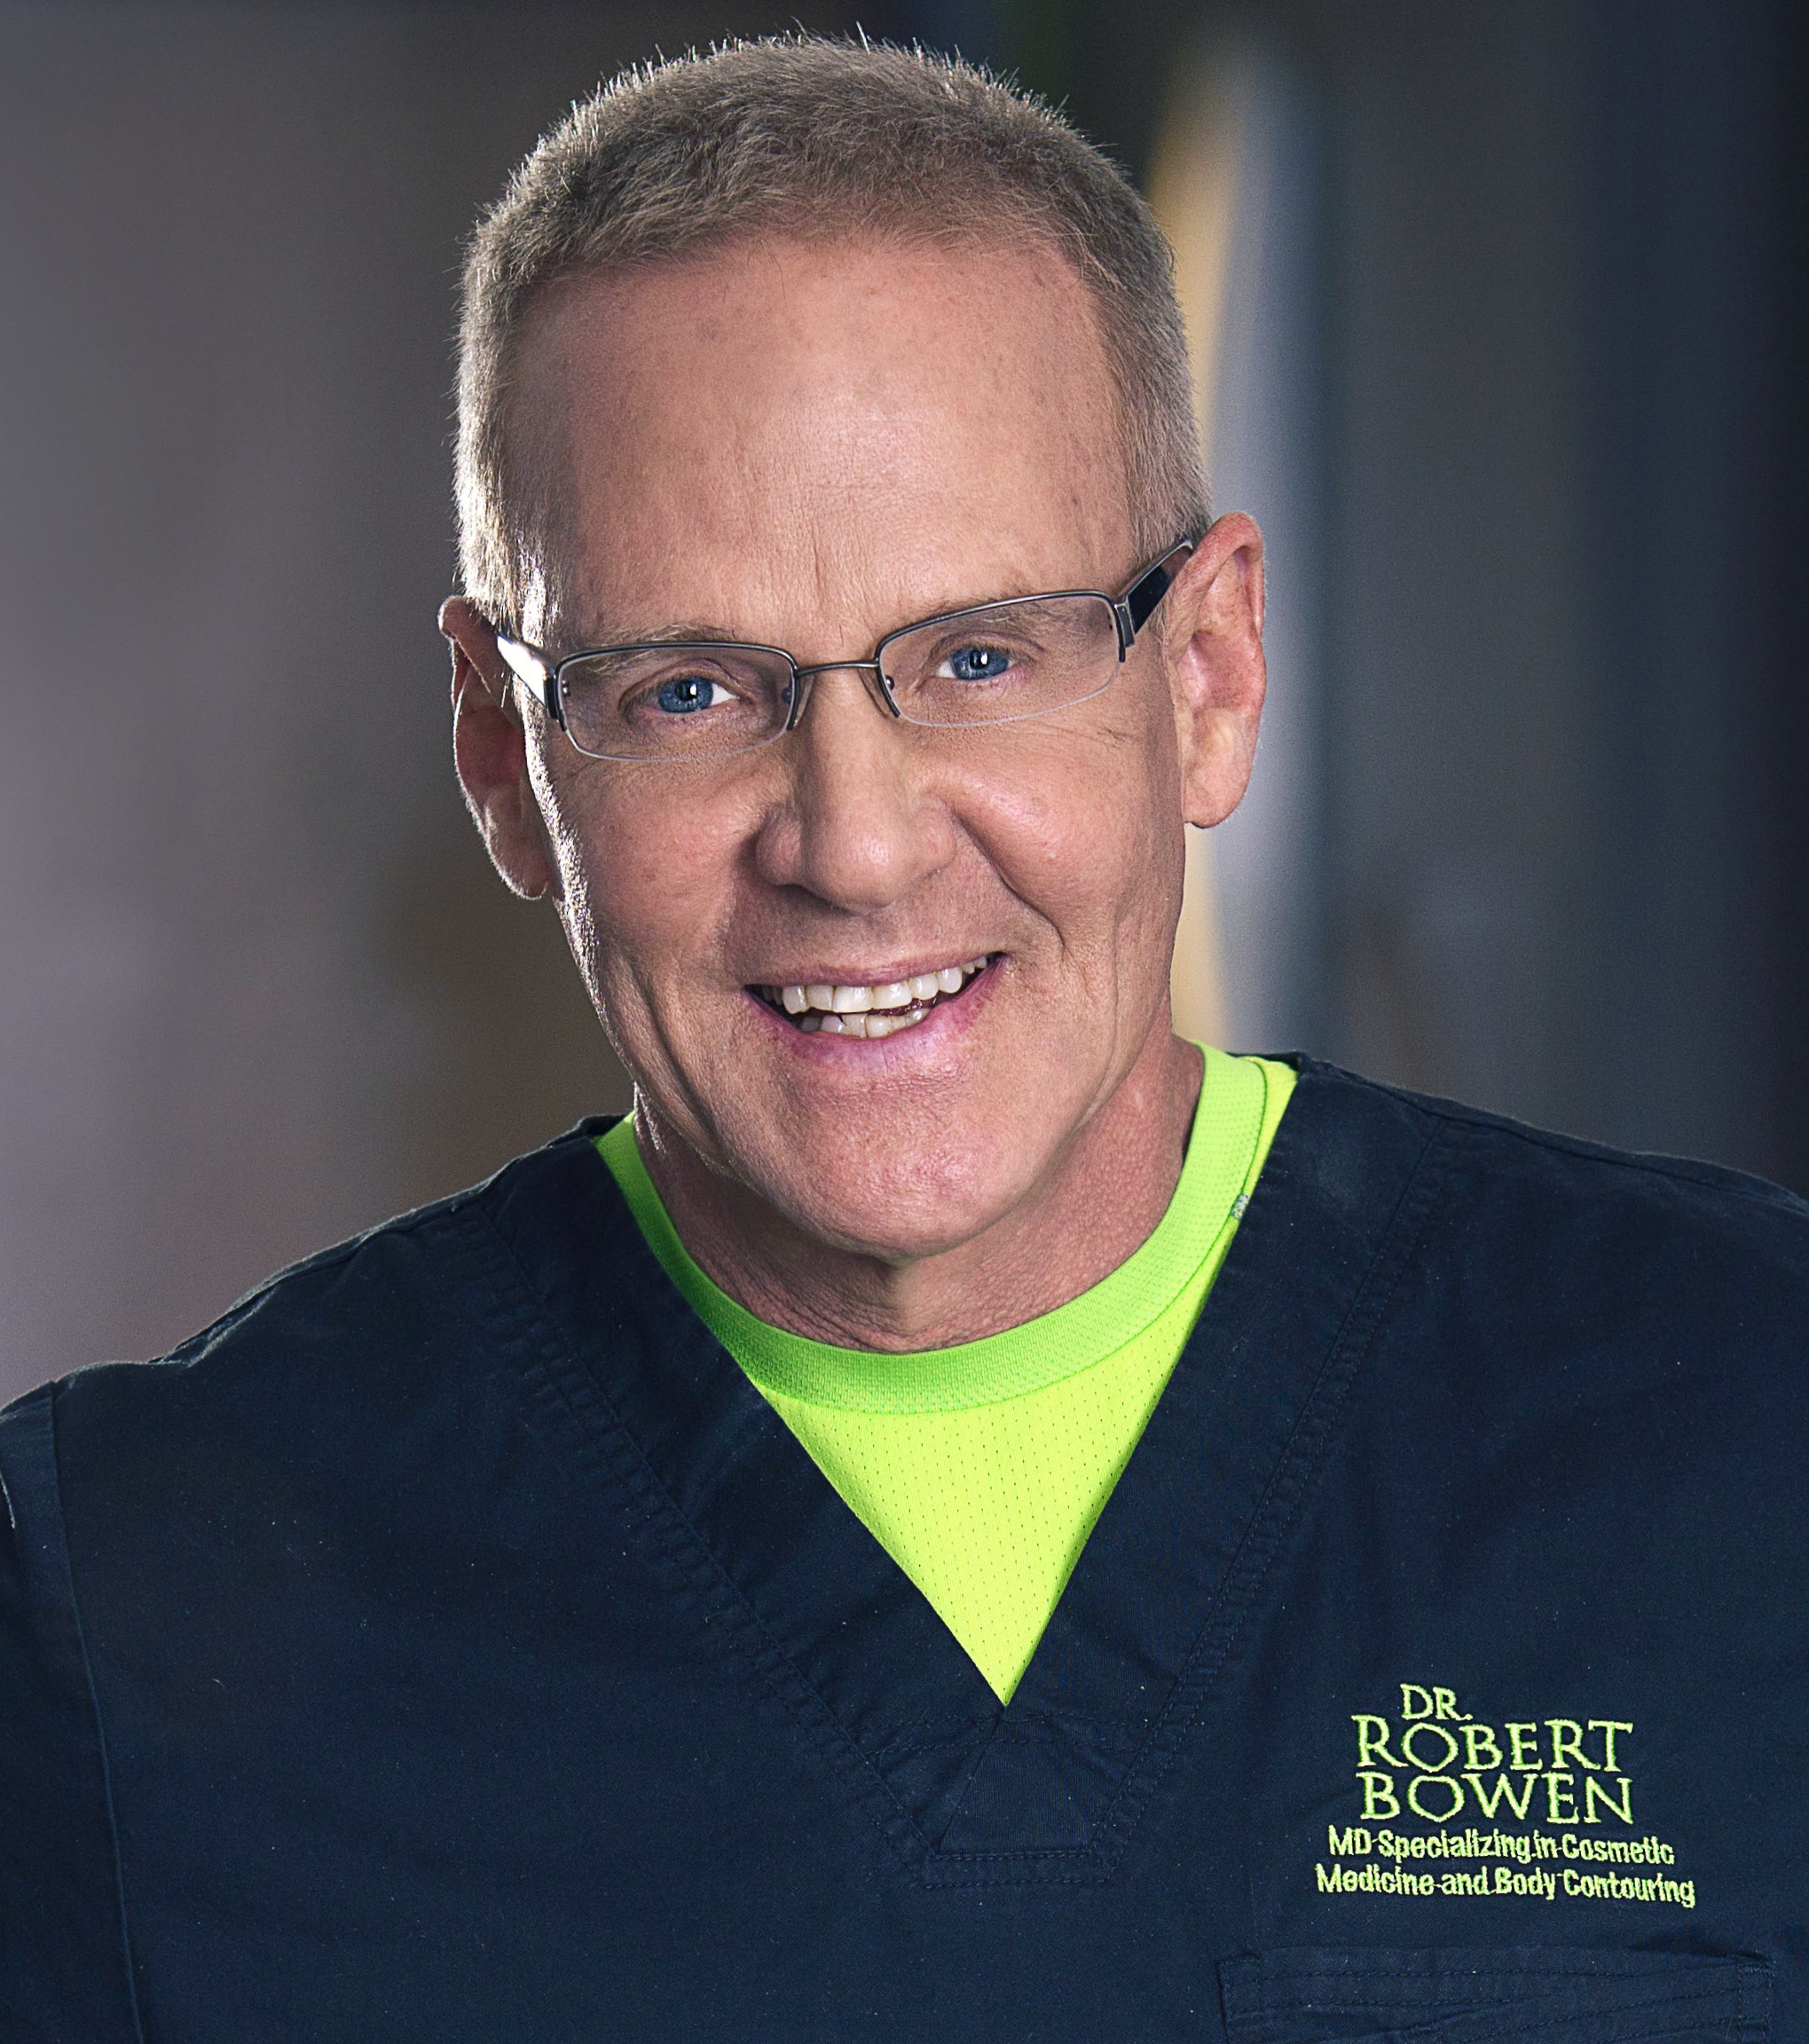 Dr. Robert Bowen, Cosmetic Medicine & Body Contouring image